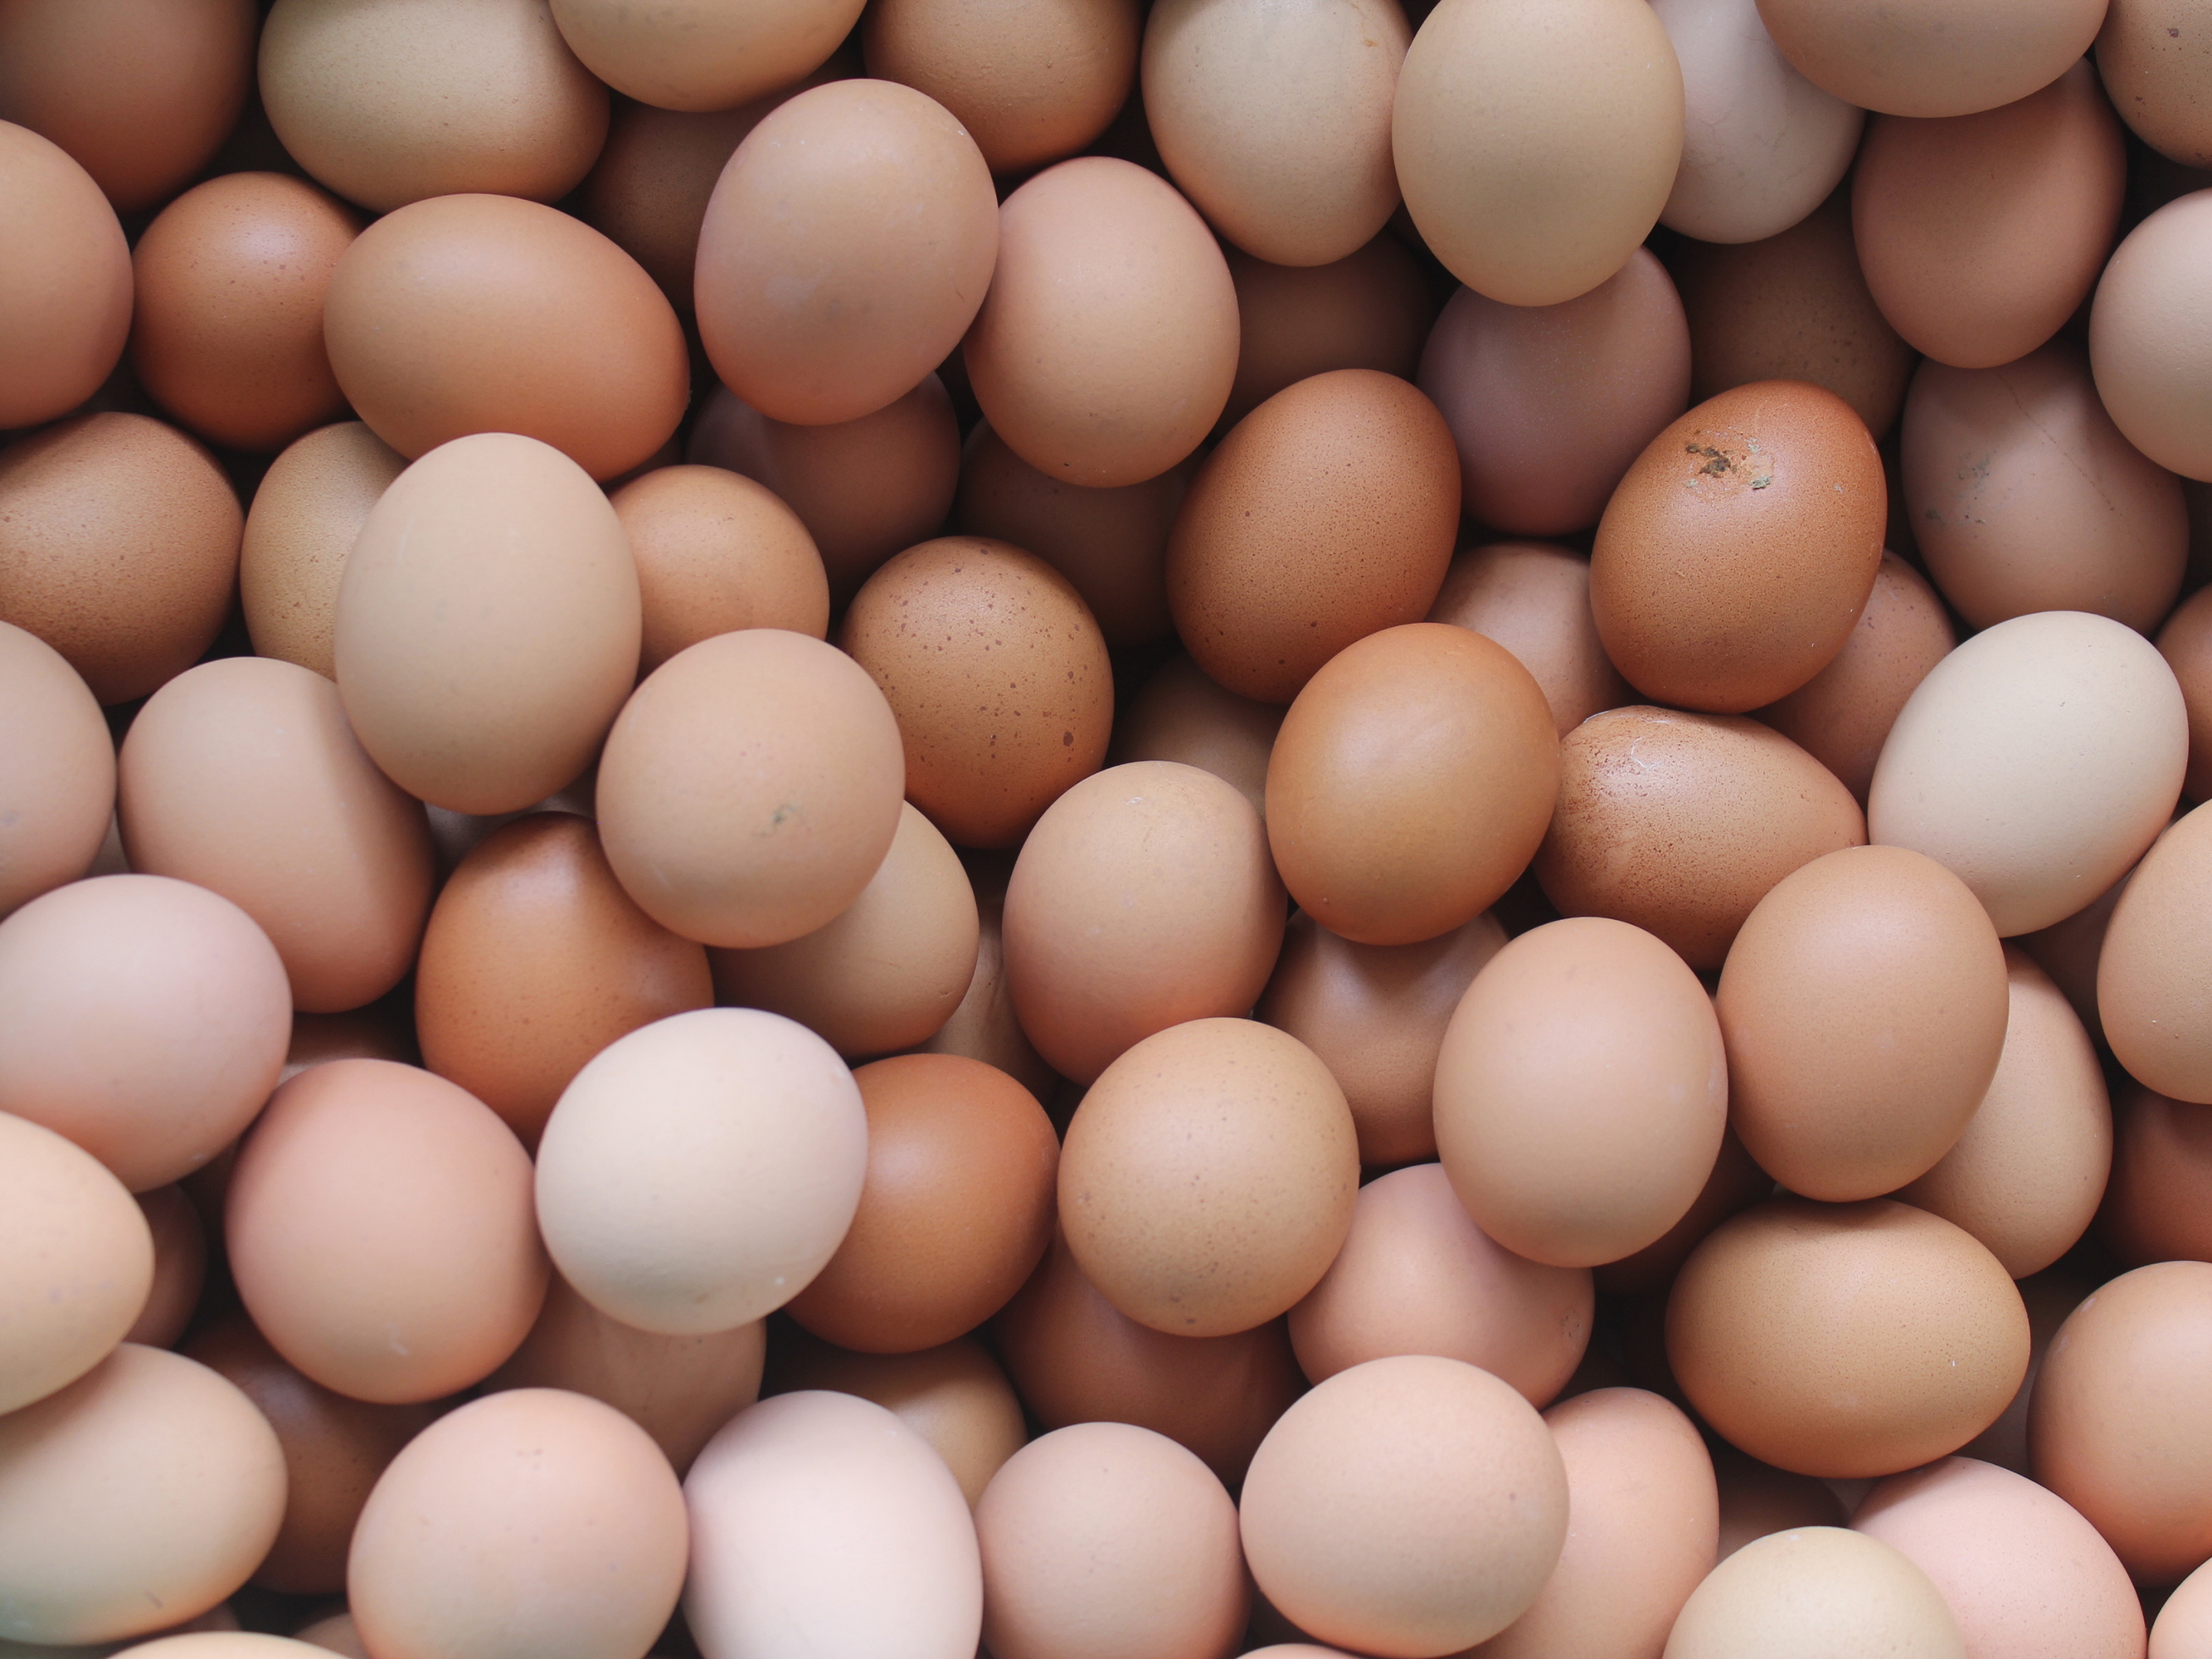 This Egg Company Just Recalled 206 Million Eggs—Are You Affected